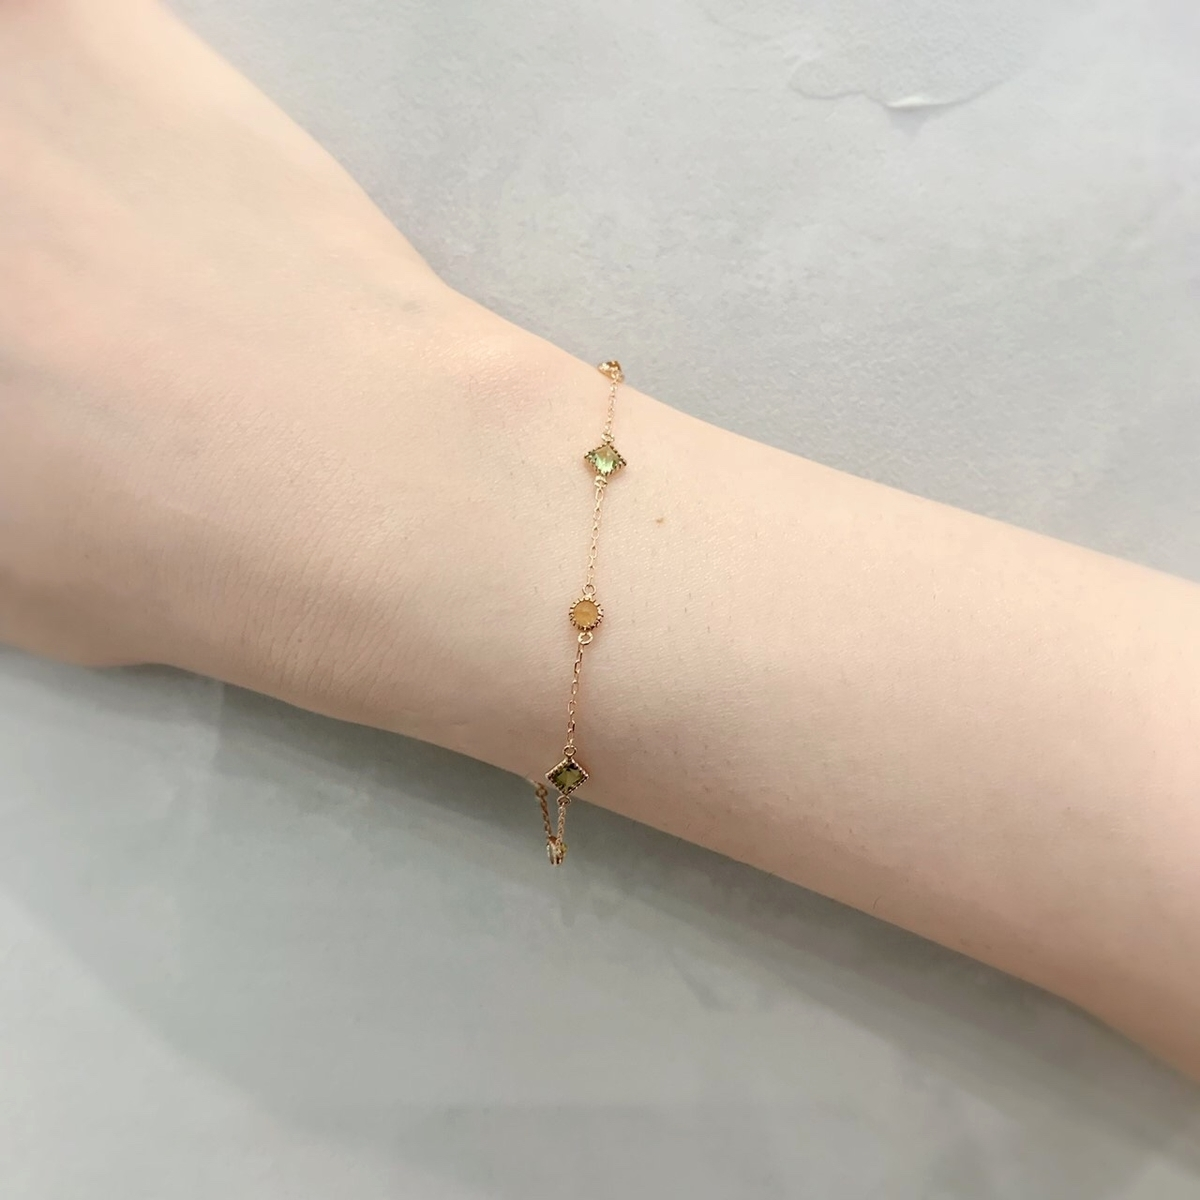 f:id:snow-jewelry-terrace:20190622155604j:plain